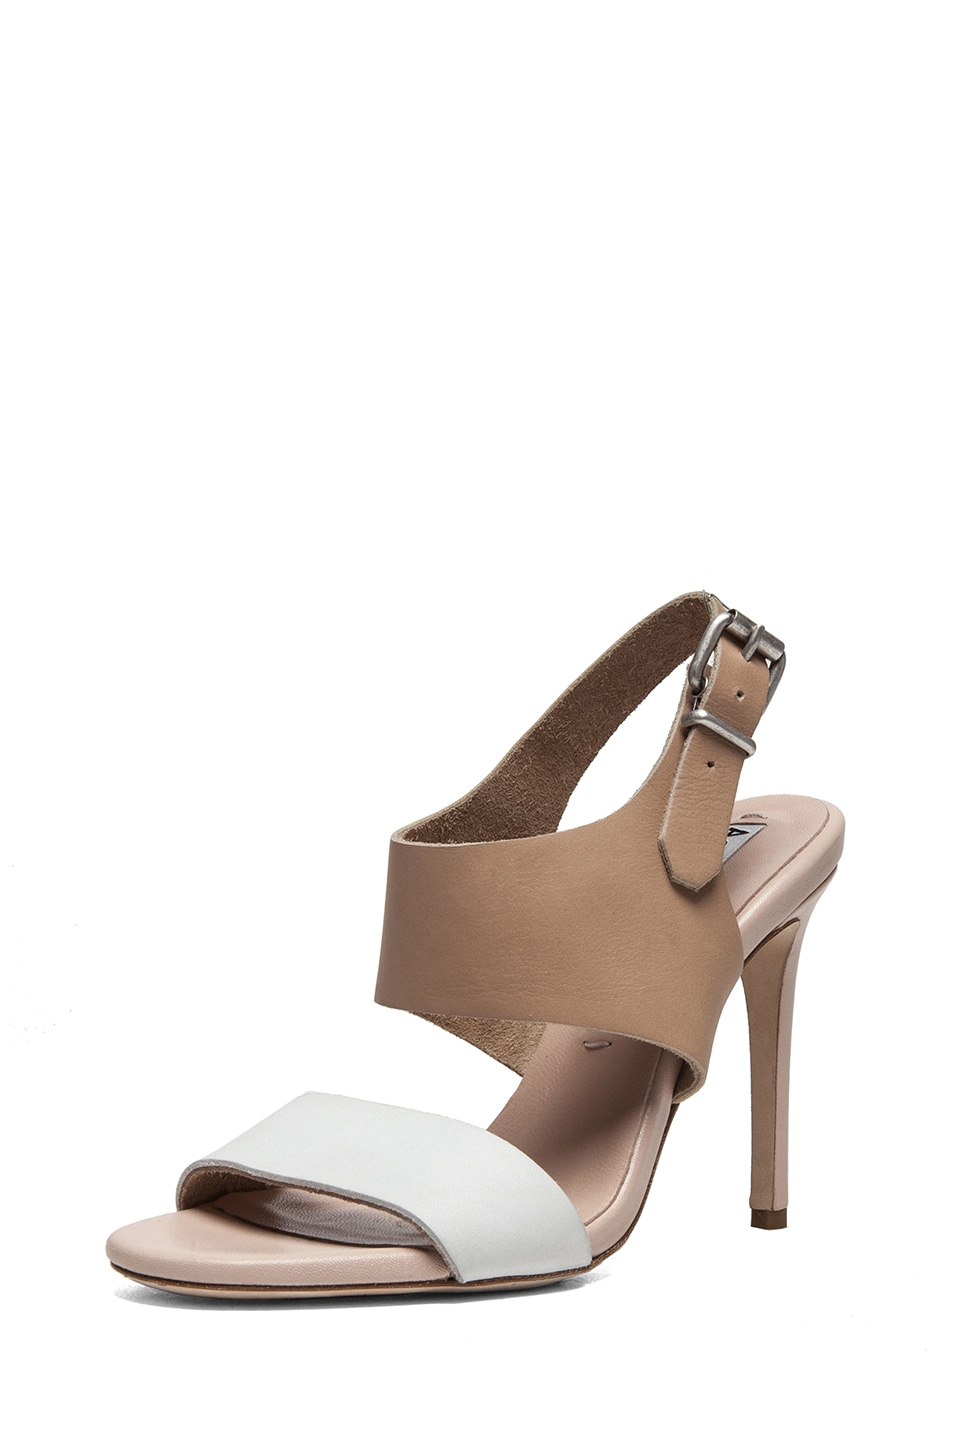 Image 2 of Acne Studios Tillie Leather Sandals in Nude & White